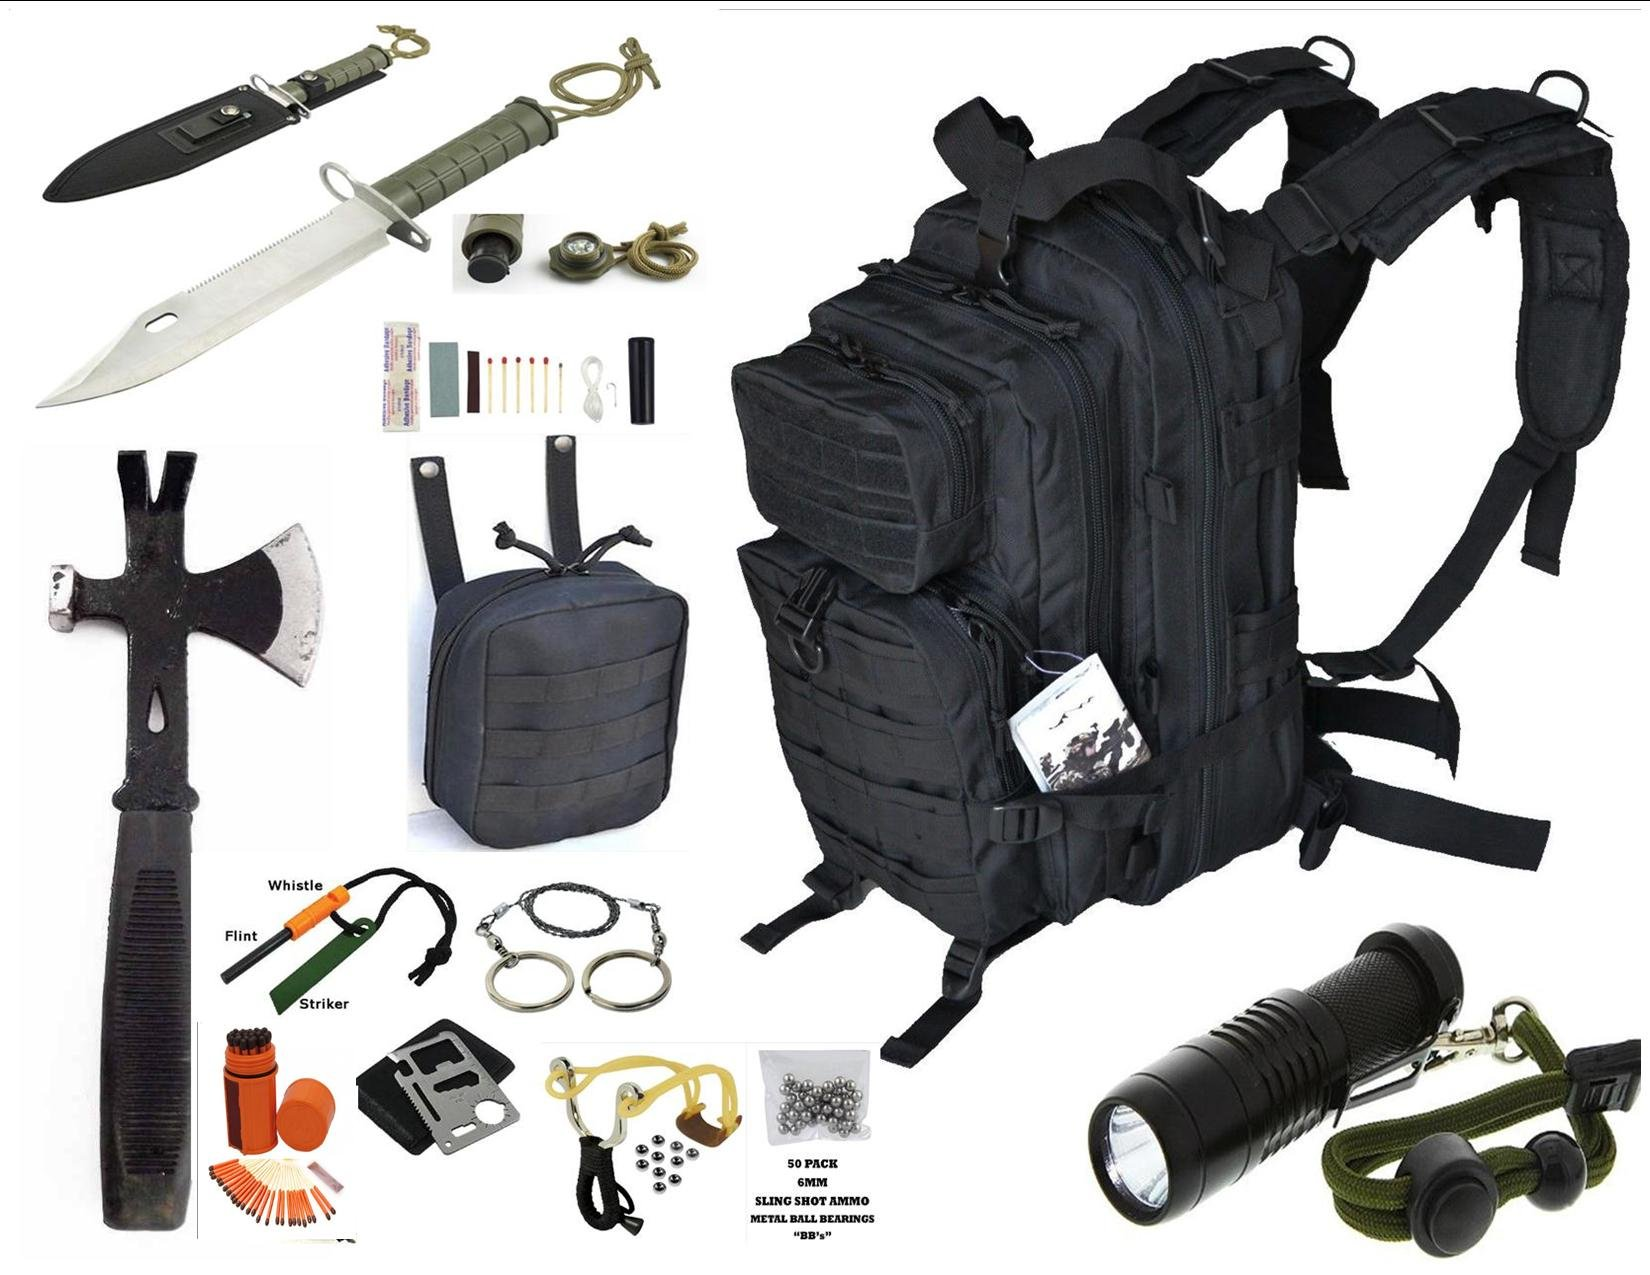 VAS BLACK OPS SURVIVAL GEAR COMBO, 17ö BUG OUT BACKPACK & MOLLE IPAK & SURVIVAL HATCHET, 15N1 SURVIVAL KNIFE, SLING SHOT & SURVIVAL ESSENTIALS #248